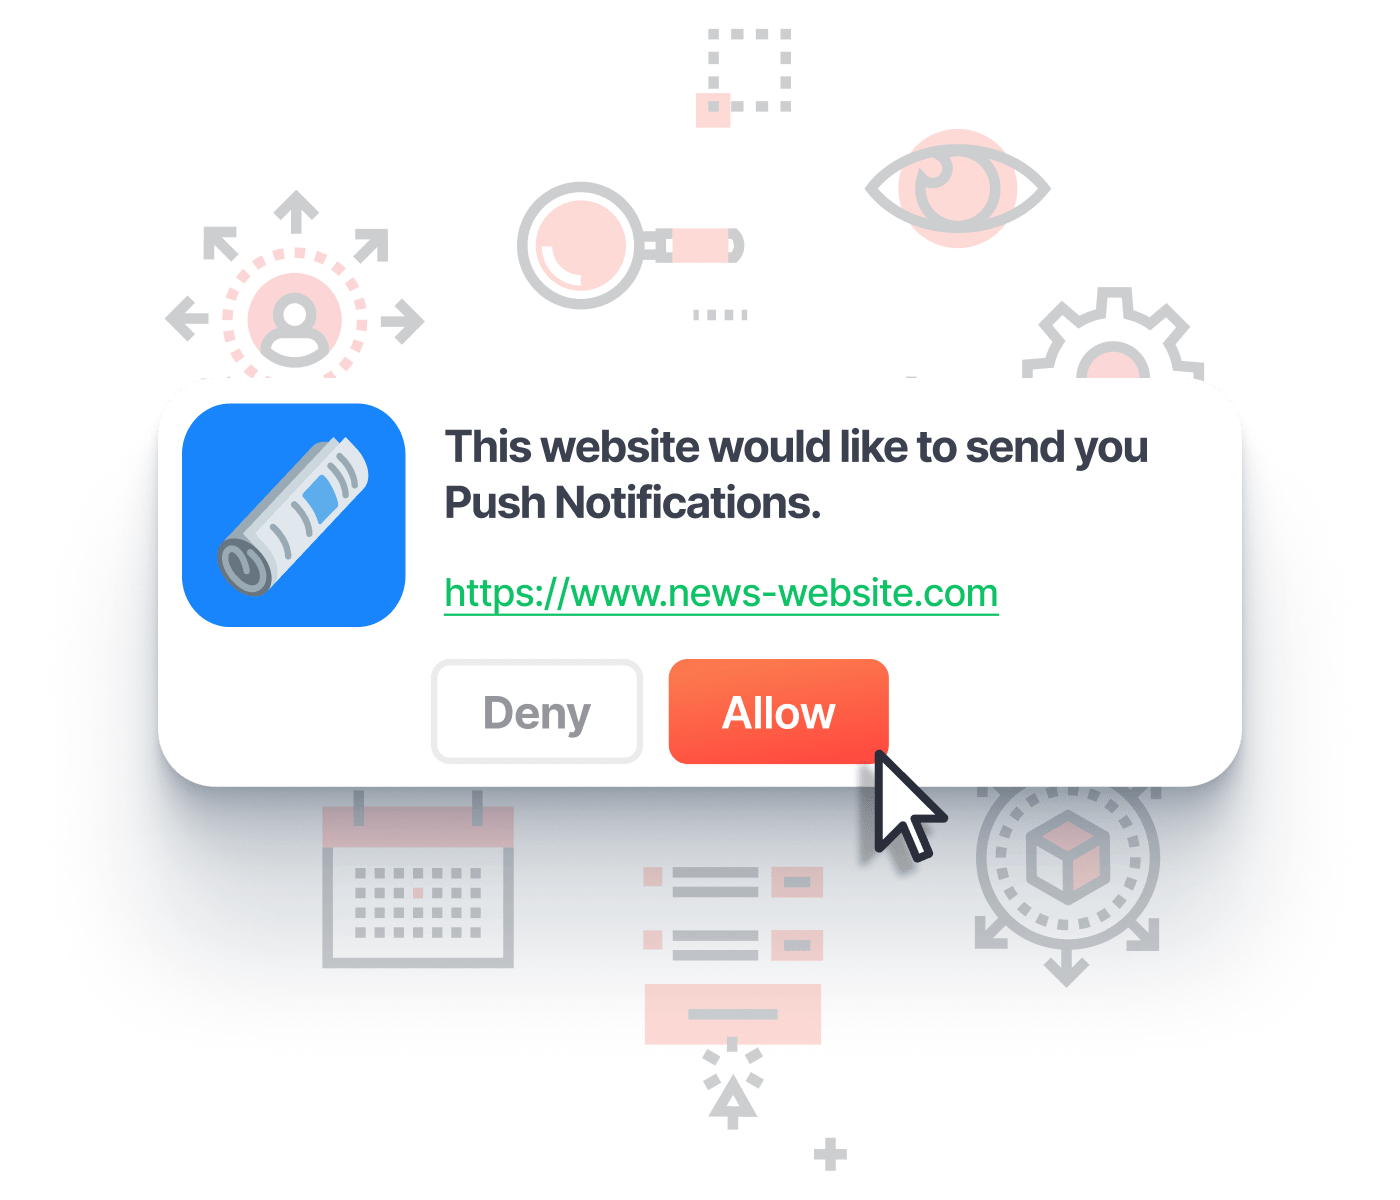 Push notification opt-in